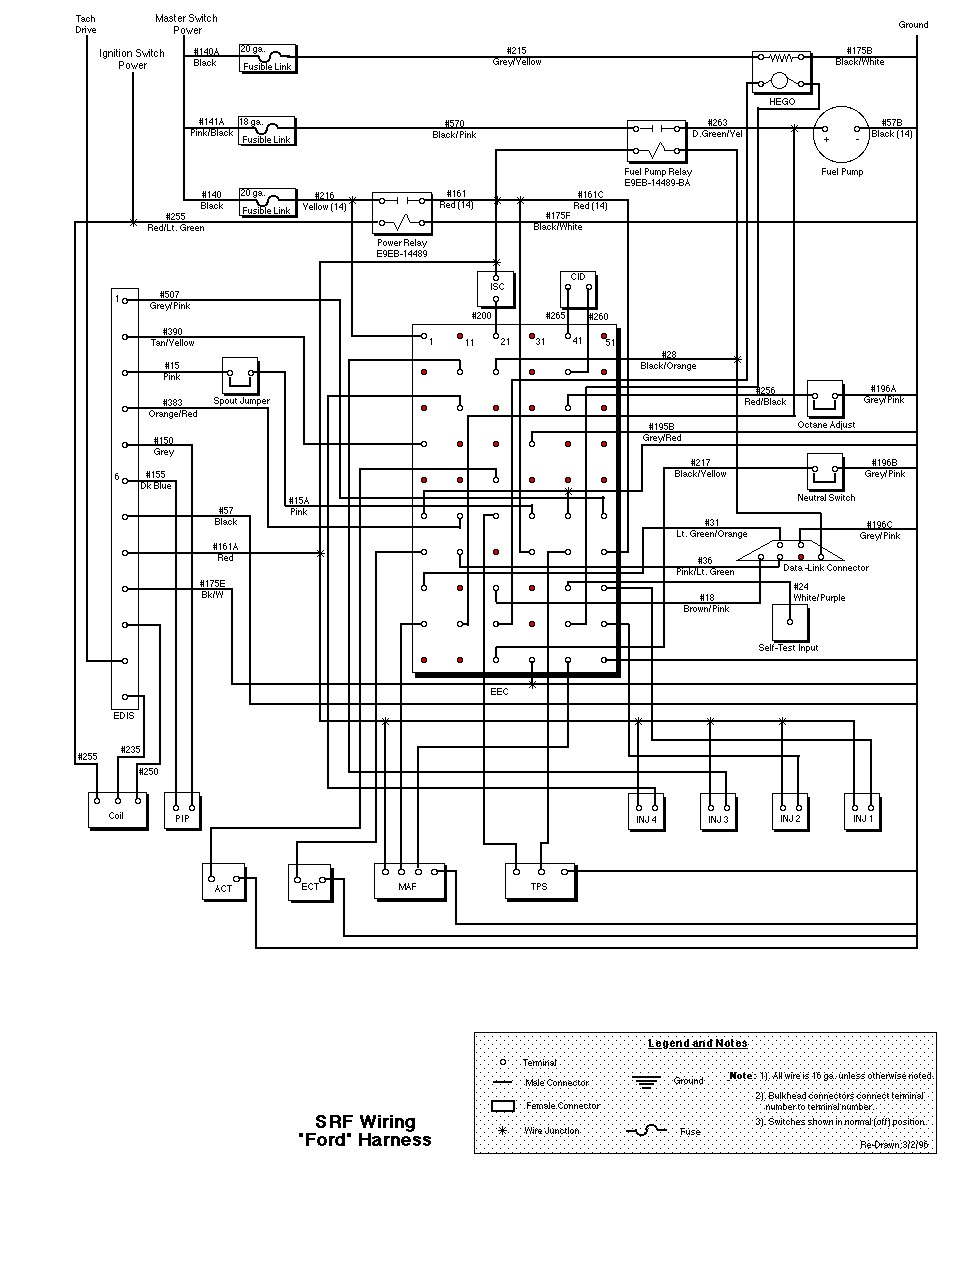 [ZHKZ_3066]  L9000 Wiring Schematic Fuse Box - Chevy Malibu Power Window Wiring Diagram  for Wiring Diagram Schematics | Ford L9000 Wiring Diagram Brakelights |  | Wiring Diagram Schematics